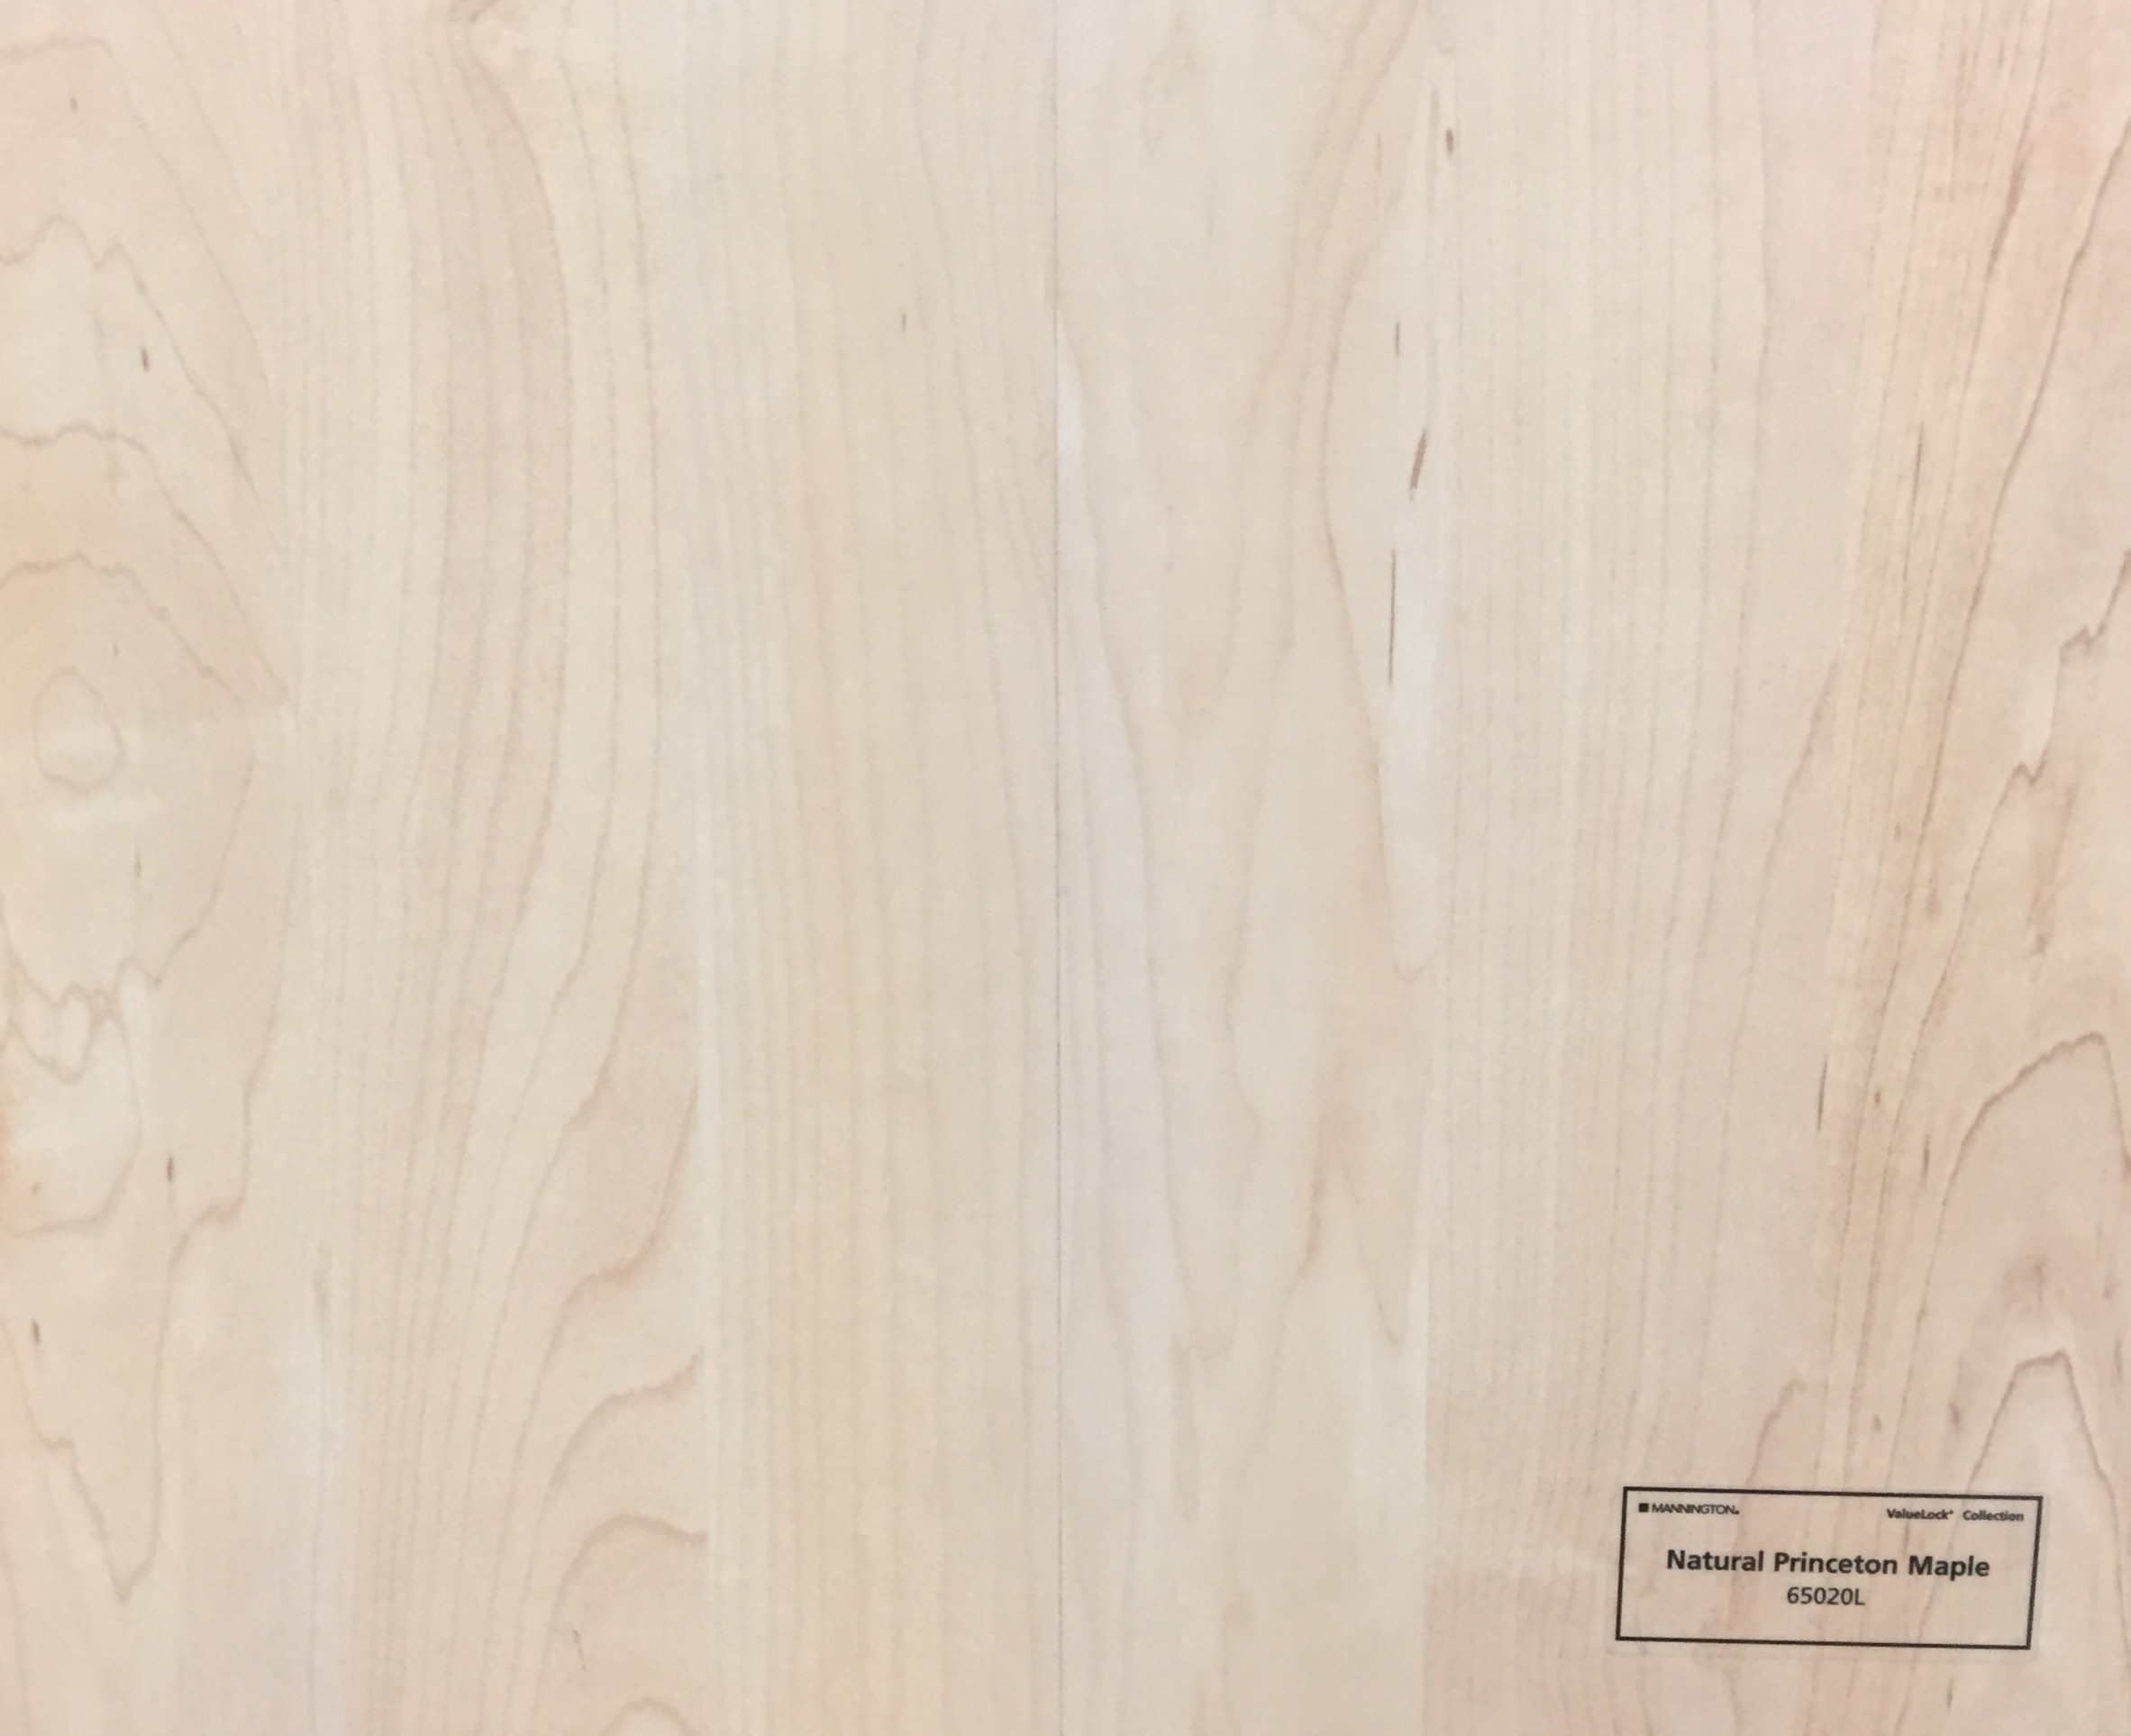 Natural Princeton Maple - 65020L